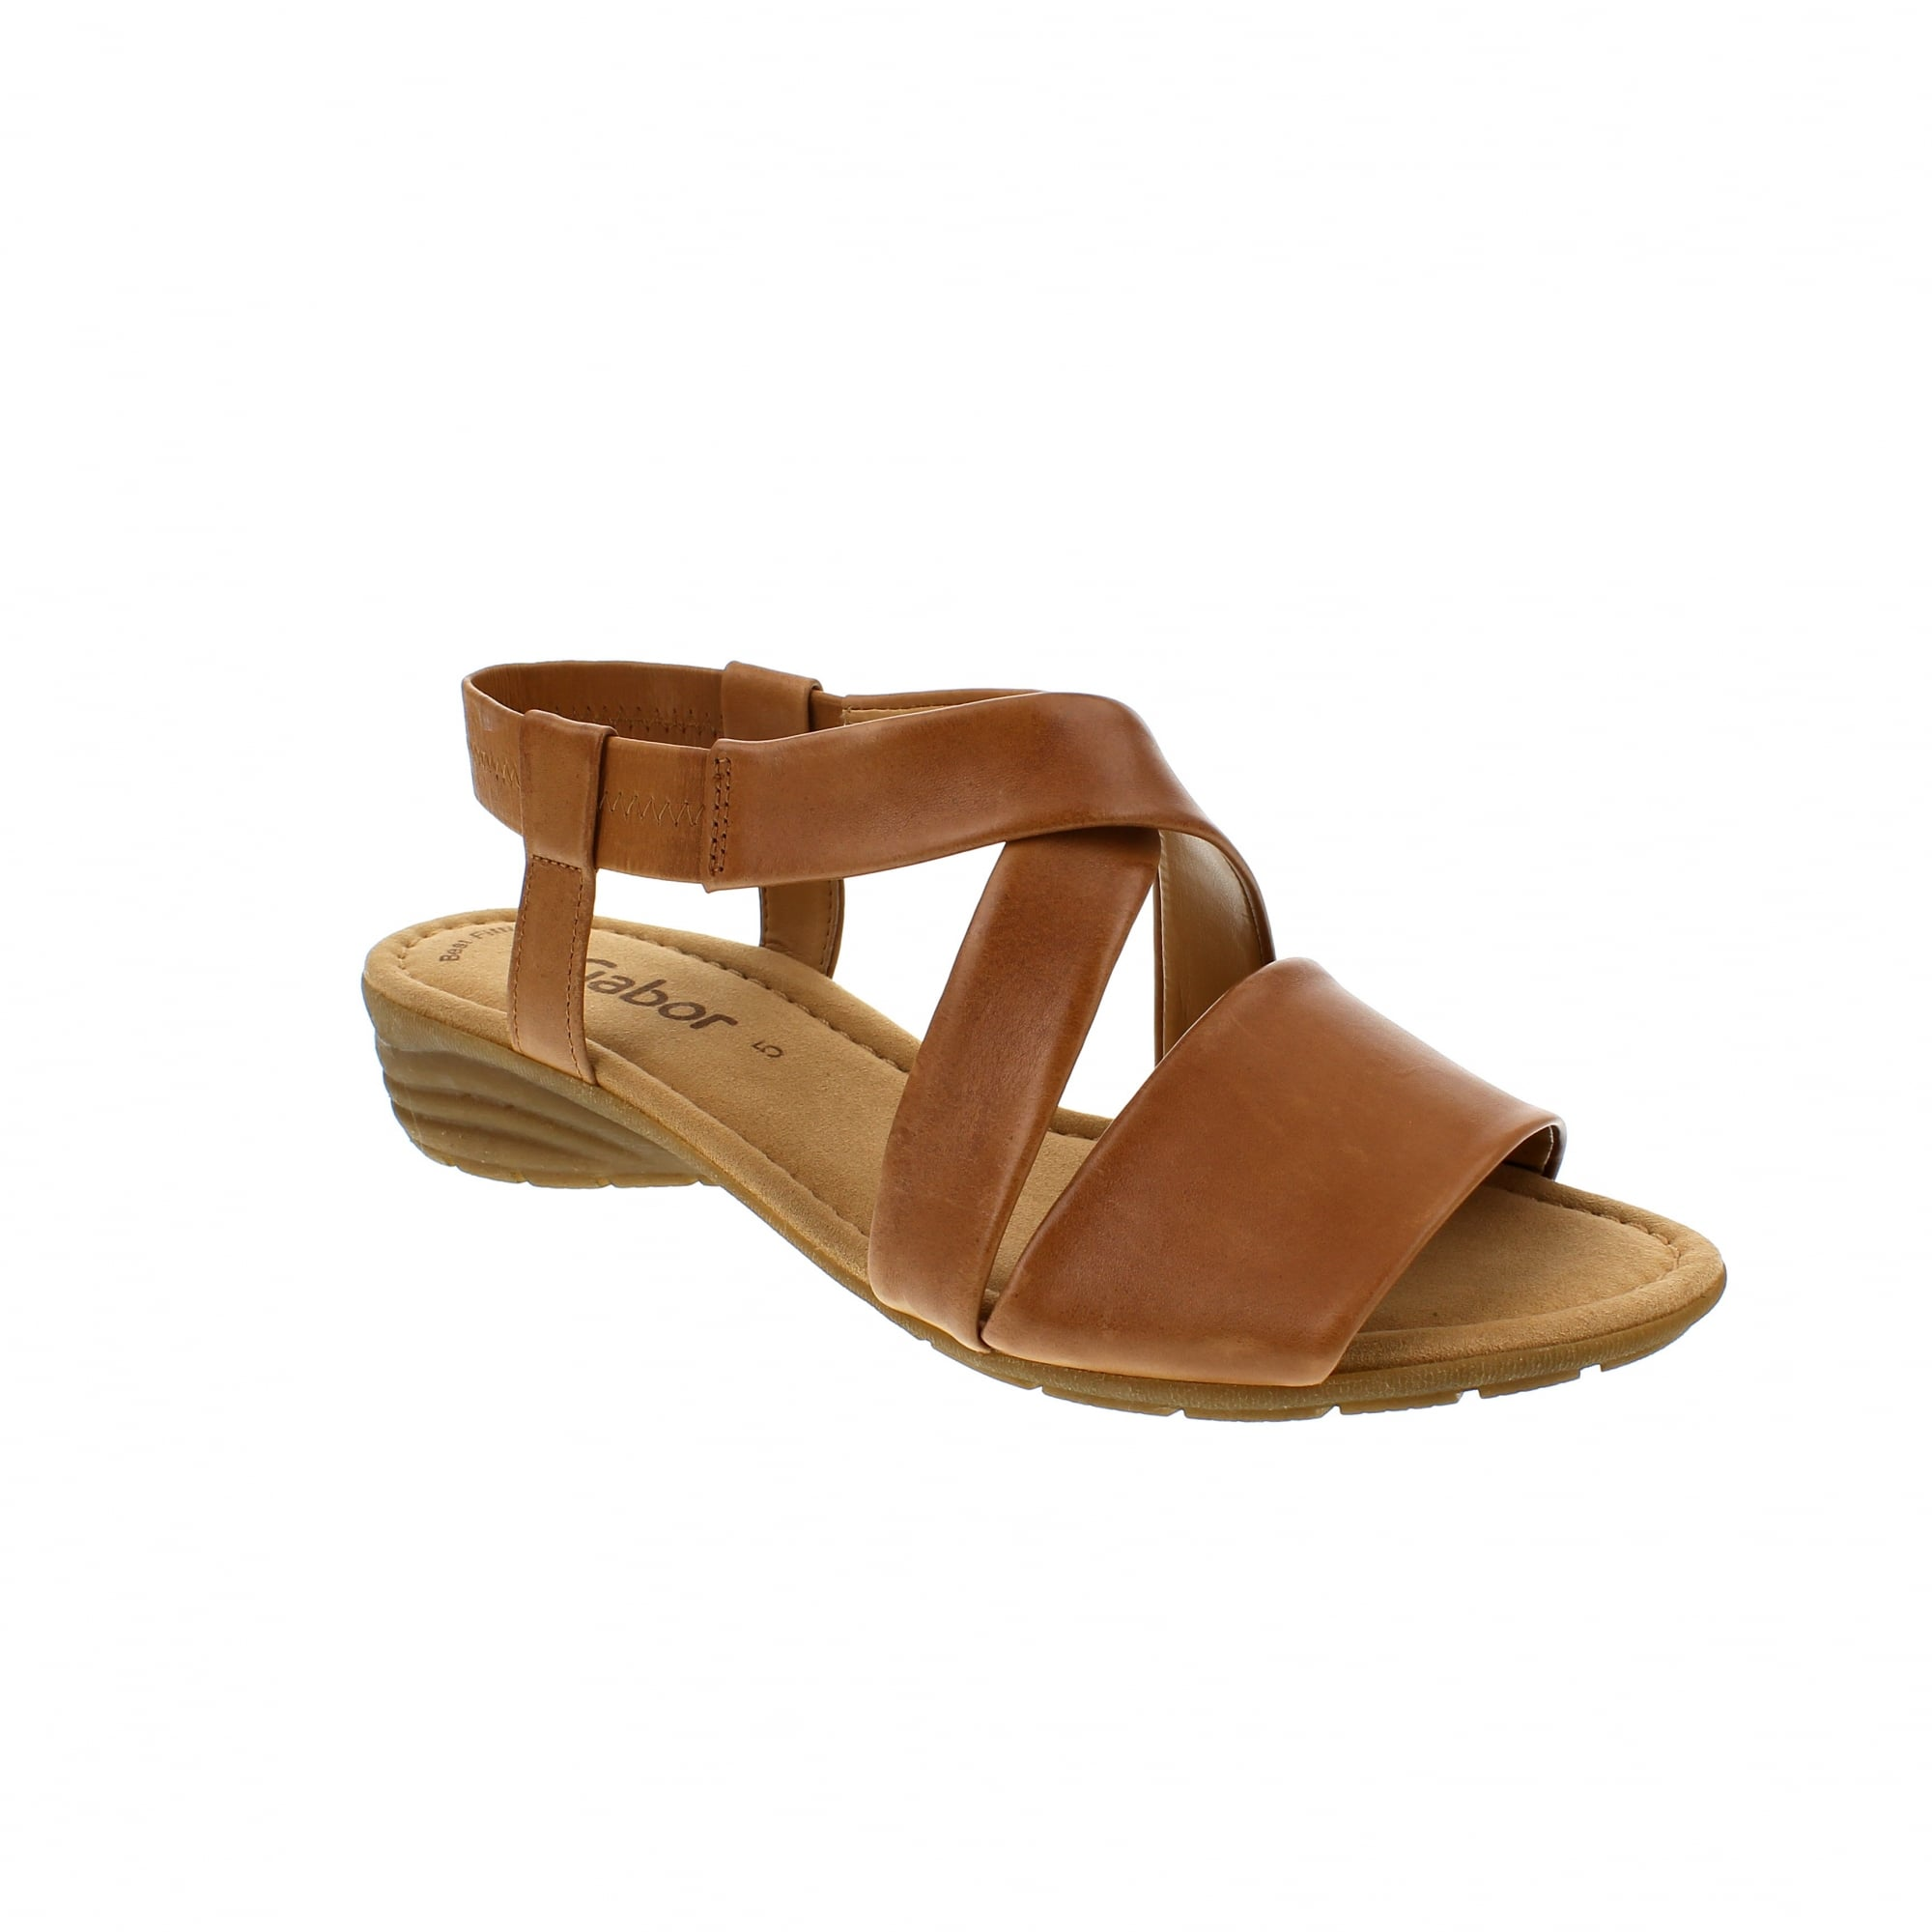 b645621ab0f228 Gabor Ensign 24-550-24 Tan Leather Womens Sandals